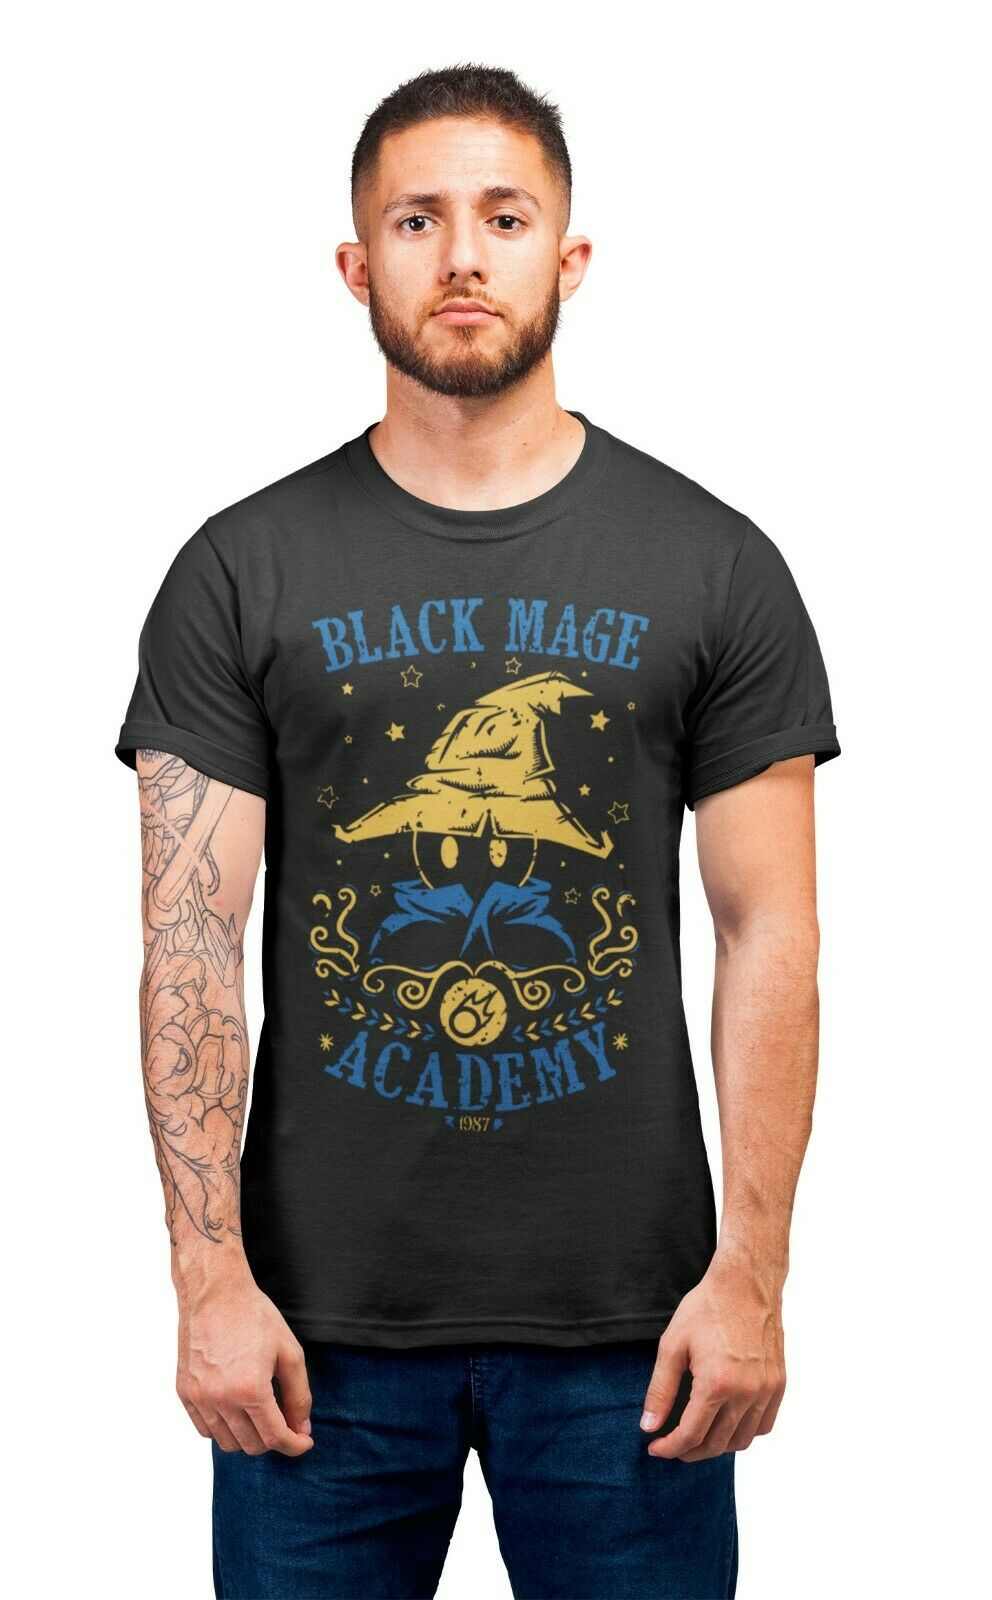 Black Mage Academy Final Fantasy Rpg Gaming T-Shirt Adults Unisex T-Shirts image